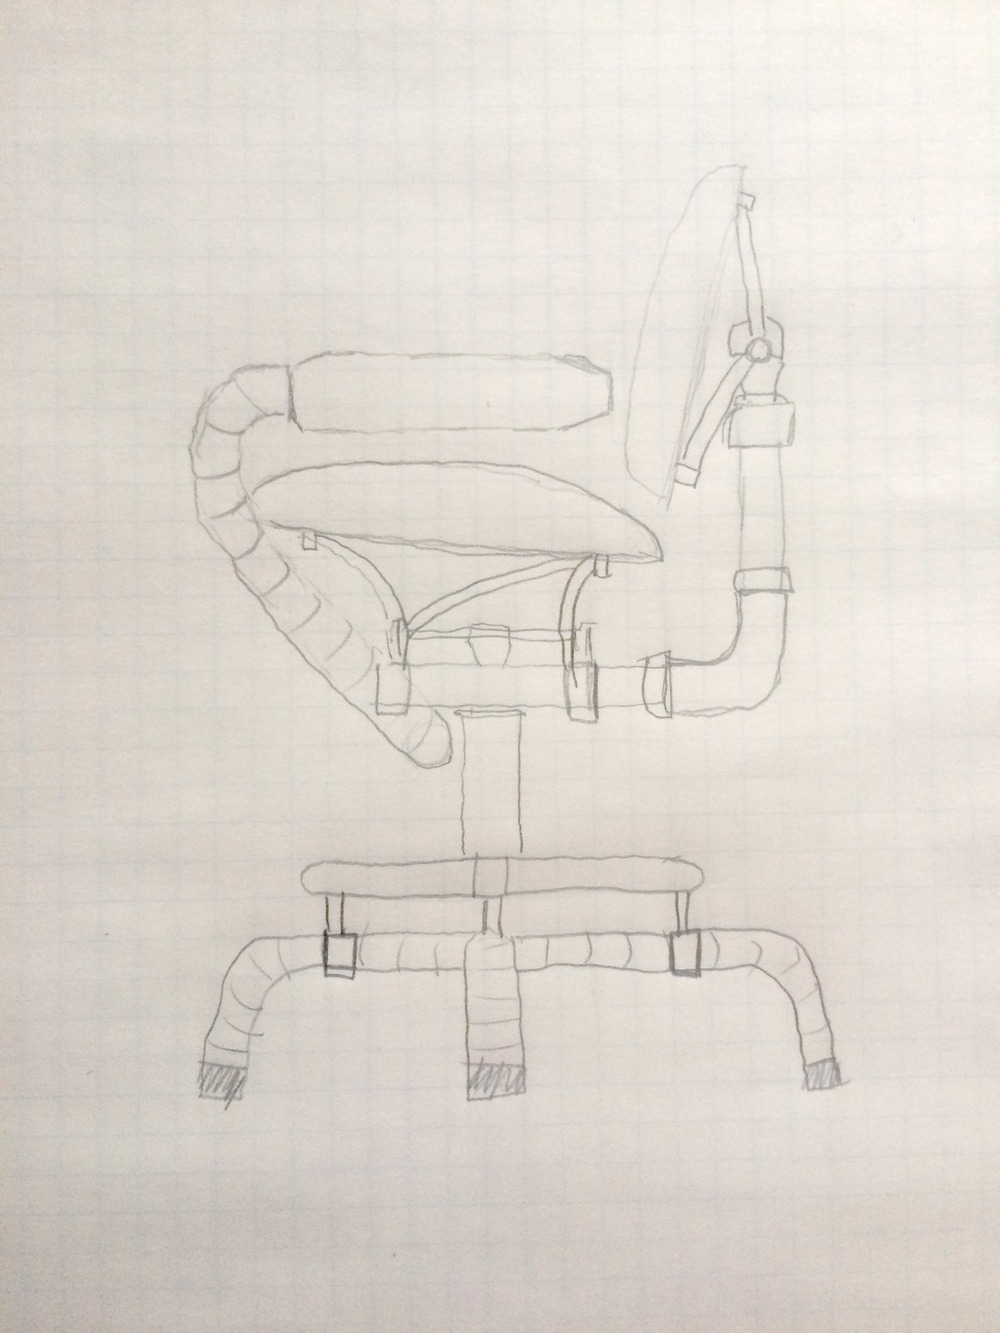 "This sketch shows a base that uses 1 3/4"" exhaust tubing that is wrapped, and finished at the bottom with exhaust tips.  The foot ring would be 1"" chrome tubing.  The base could also be made with handlebar-sized tubing (1 1/8"" or 1 1/4"" diameter) in chrome or powder coat in color choice. The bottom could be finished with handlebar grips in choice of style. The chrome mufflers that serve as arm rests at the end of the wrapped exhaust tubing can as short at 12"" and as long as 30"". The center column that connects the base to the seat/back assembly would contain a swivel. Parts that I normally paint or powder coat in black, can also be any other color."